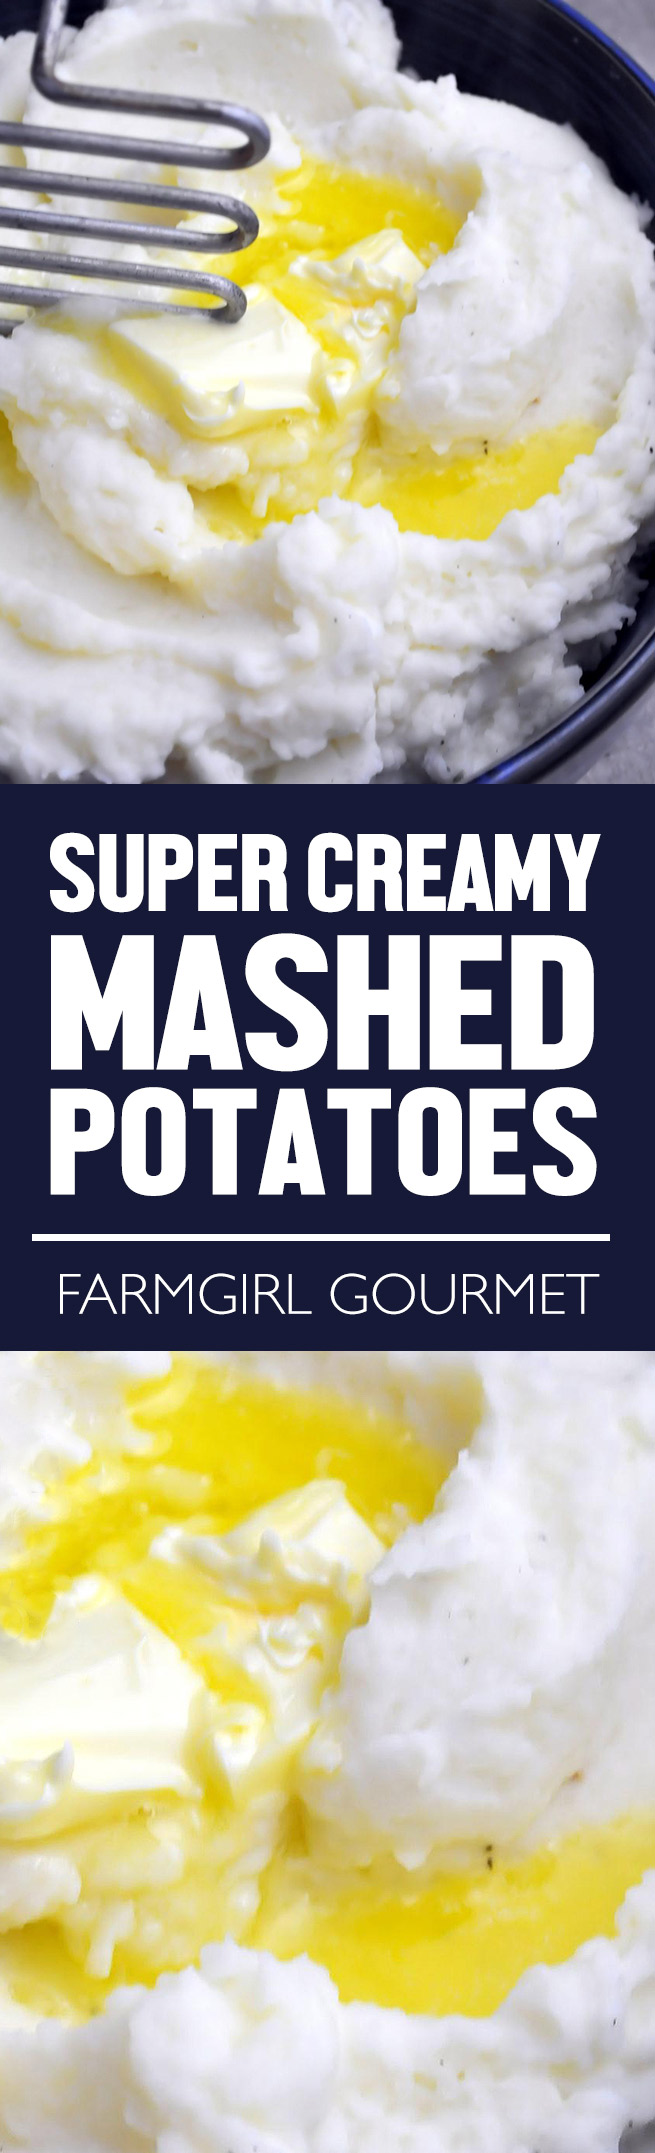 Super Creamy Mashed Potatoes recipe | farmgirlgourmet.com